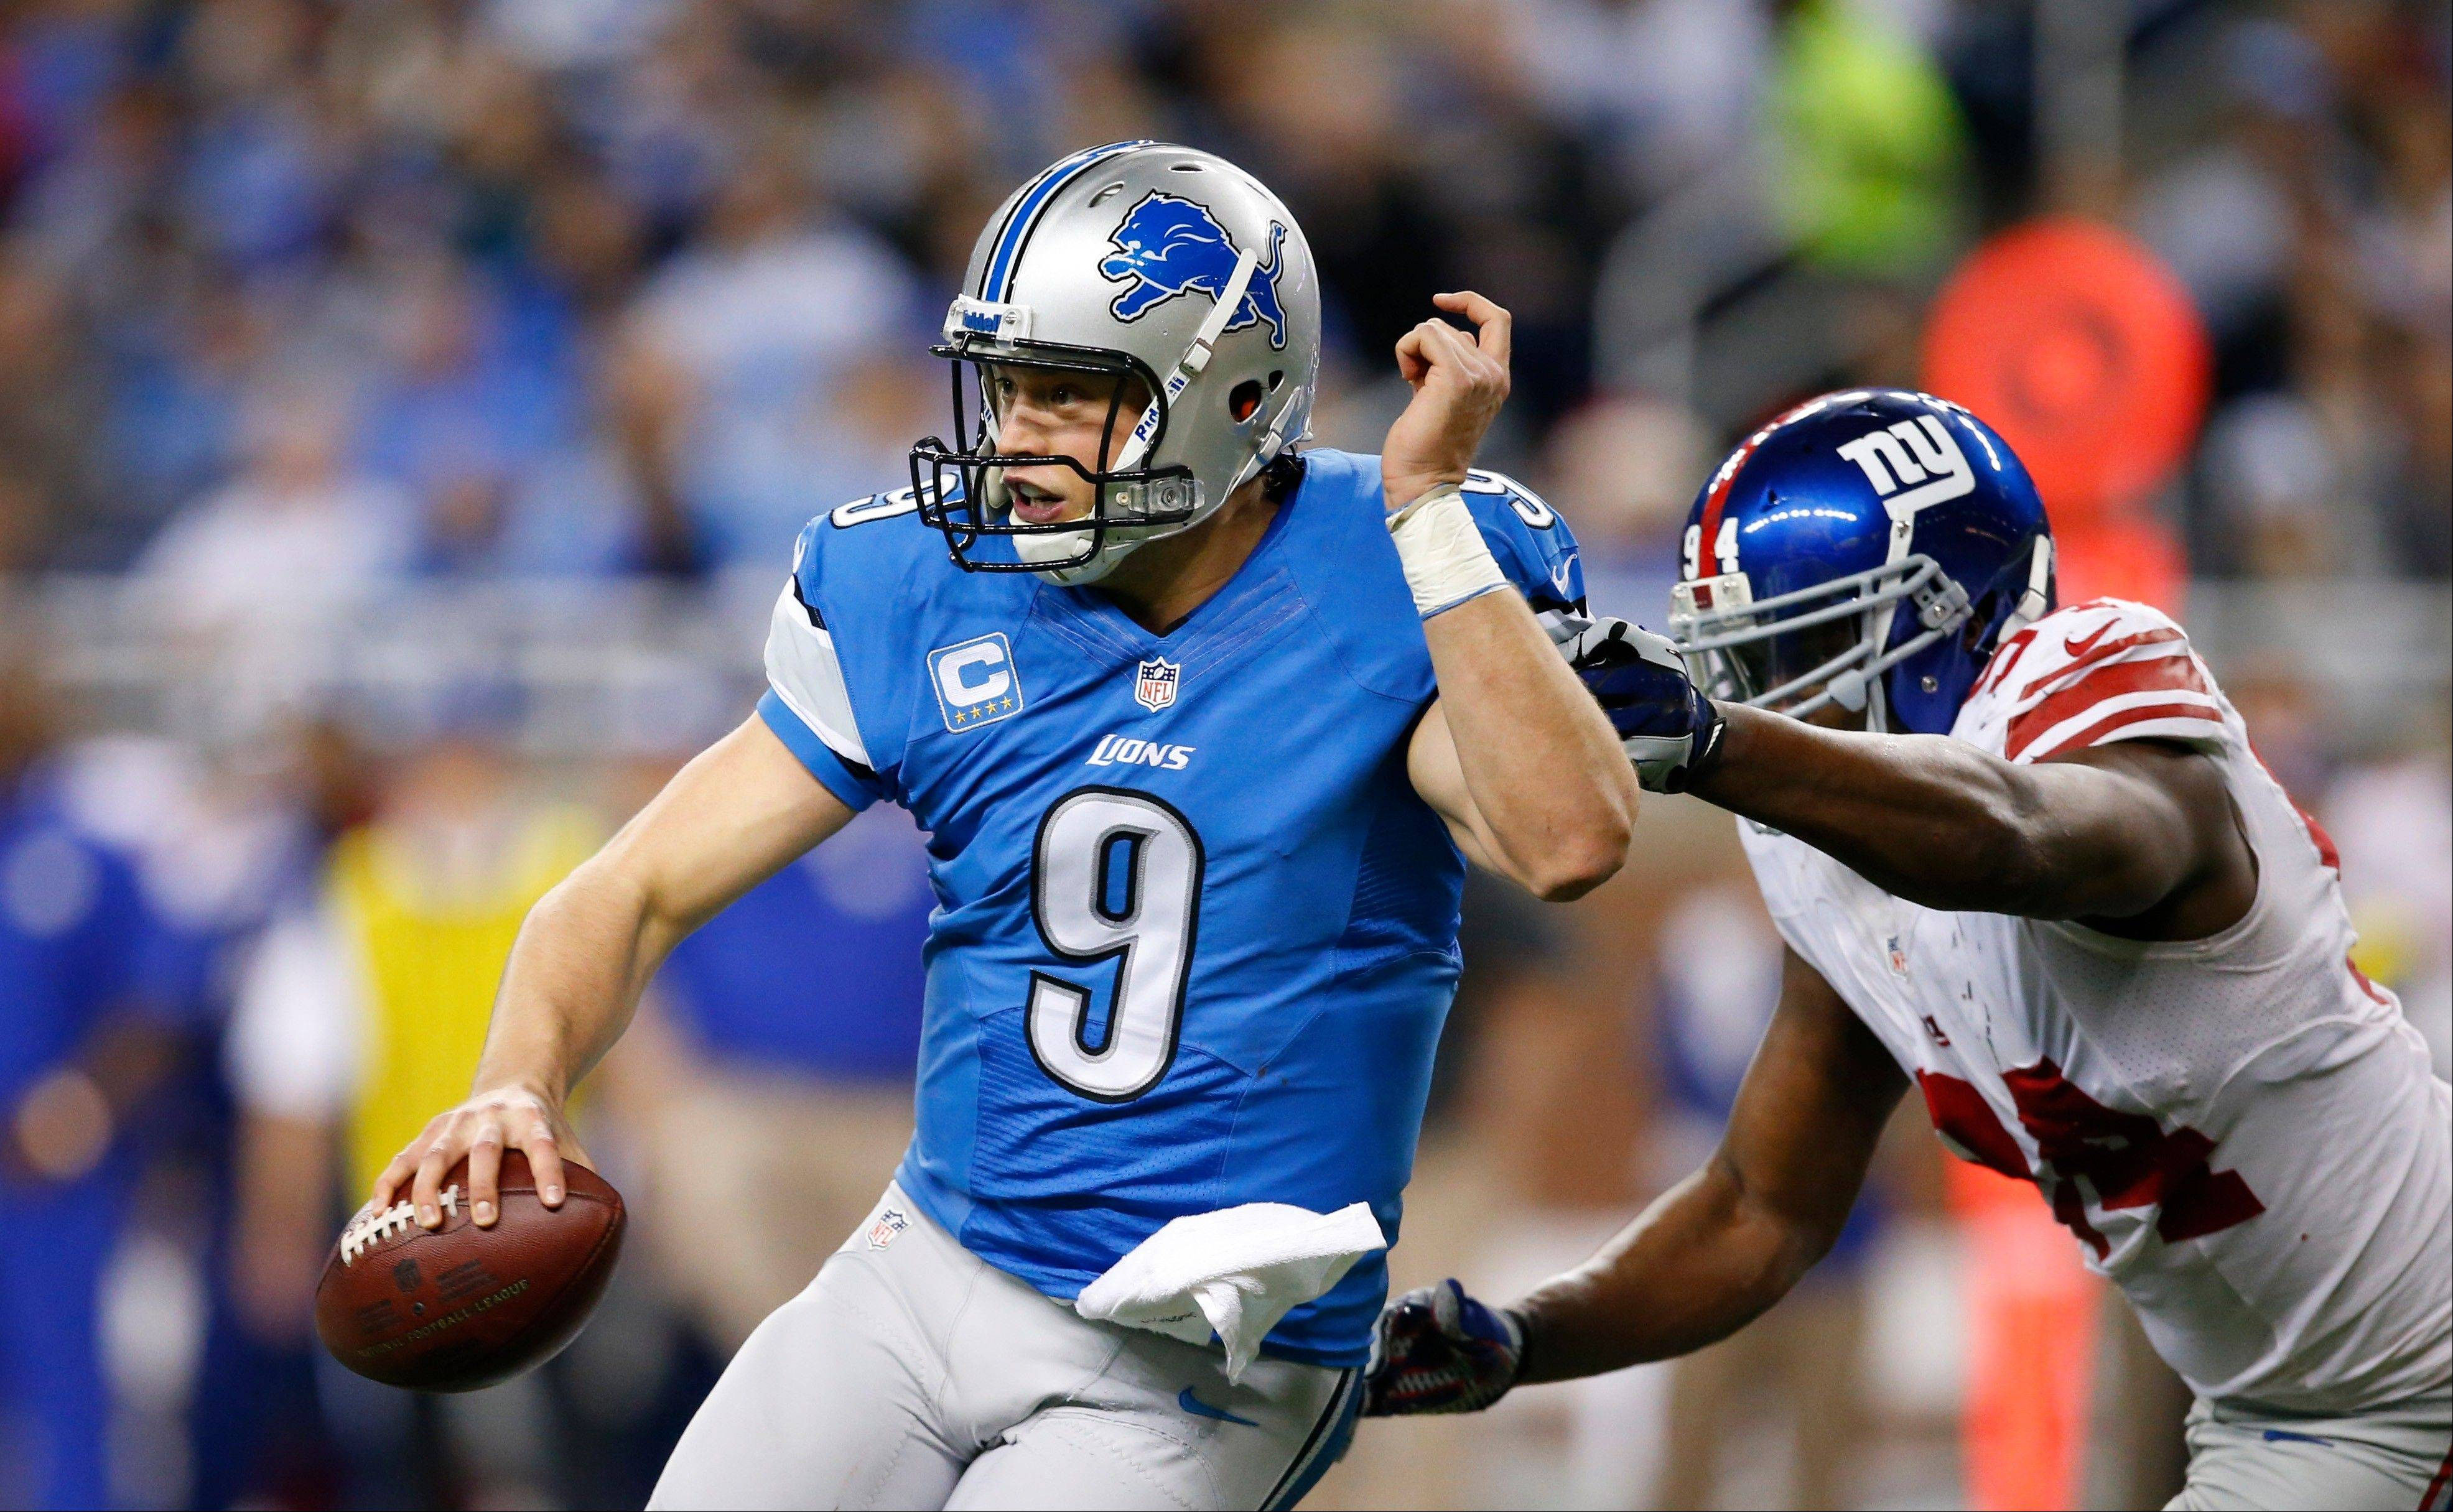 Detroit Lions quarterback Matthew Stafford has an NFL-worst 14 turnovers since Week 11.